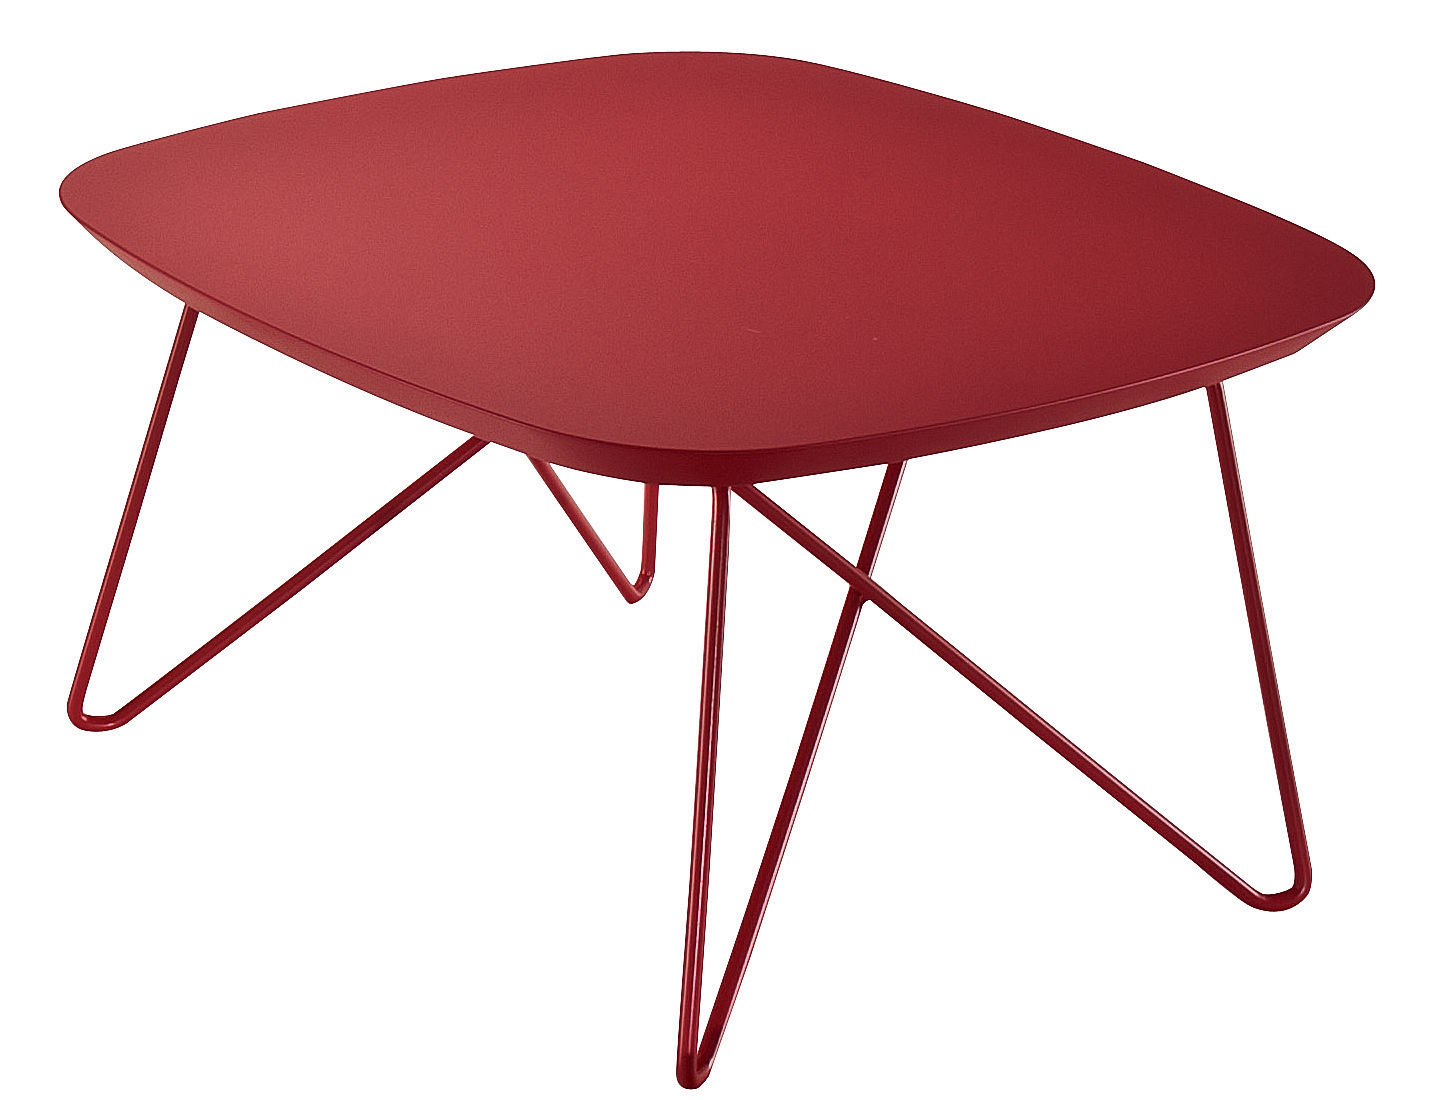 table basse ink 60 x 60 x h 35 cm rouge zanotta. Black Bedroom Furniture Sets. Home Design Ideas